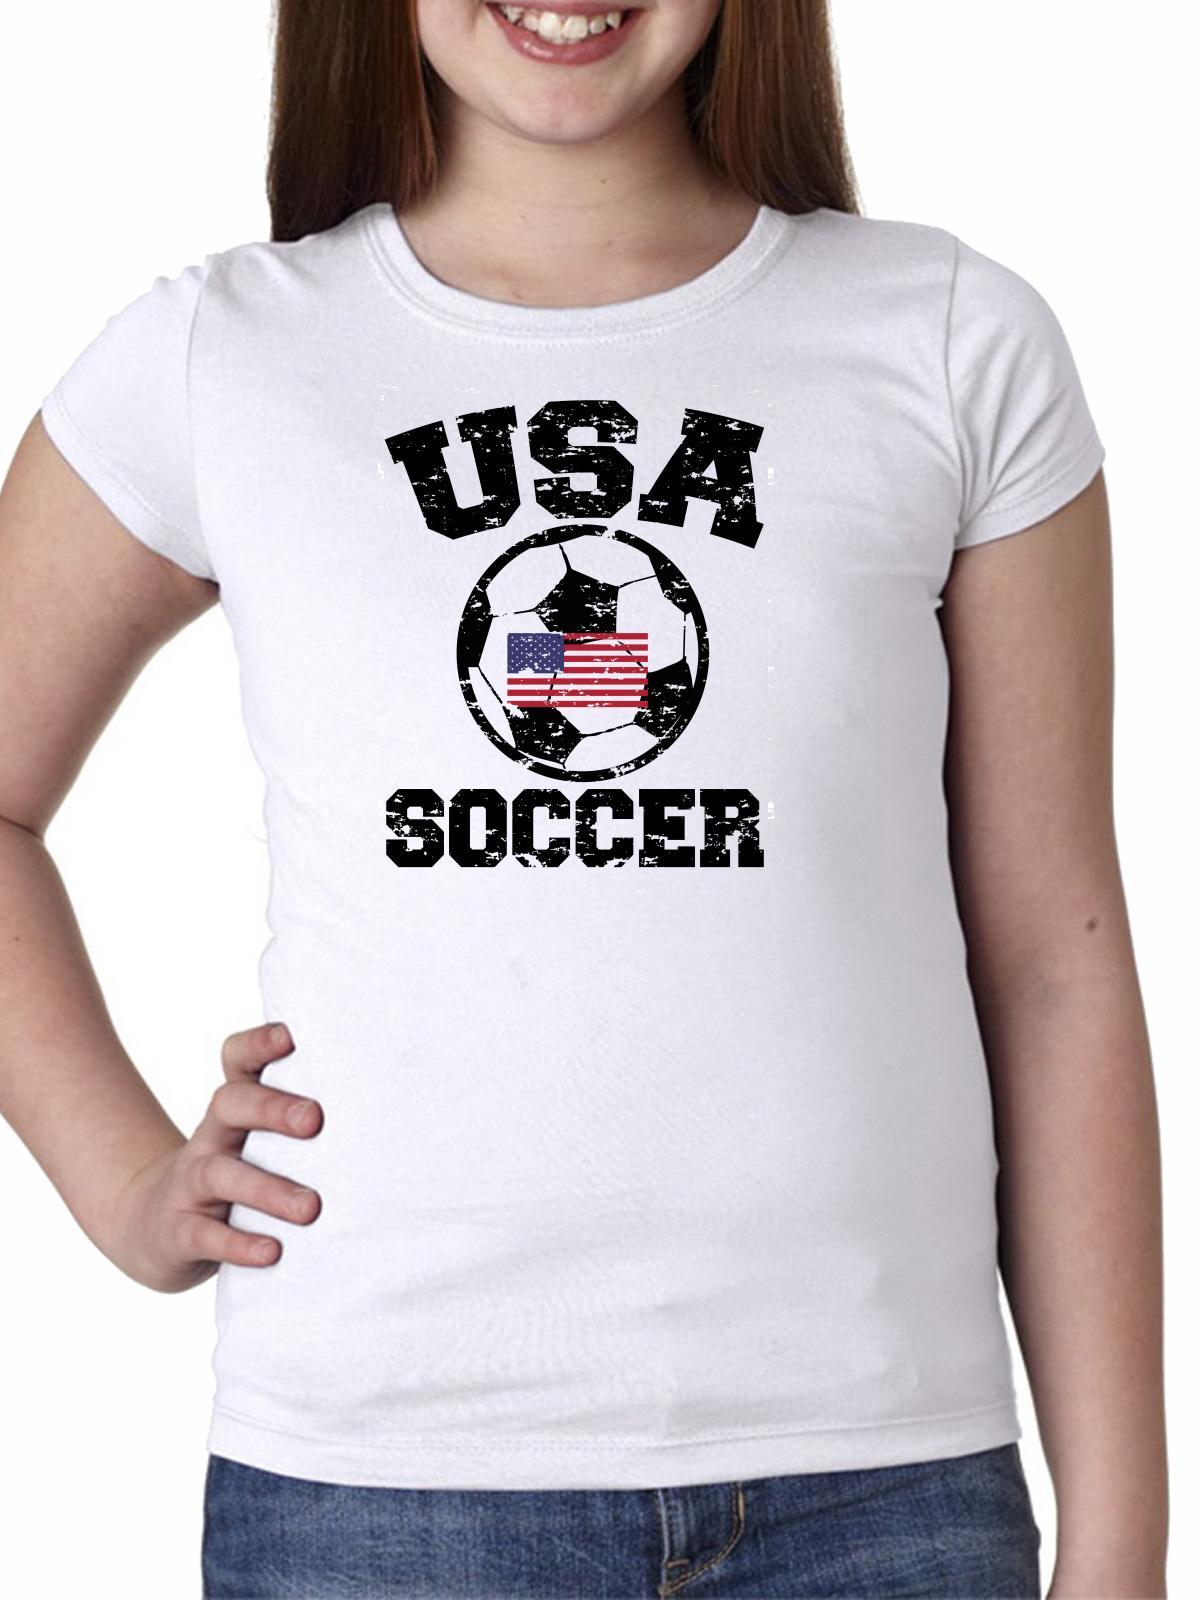 USA Soccer - with Large Soccer Ball & Flag - Olympic Girl's Cotton Youth T-Shirt